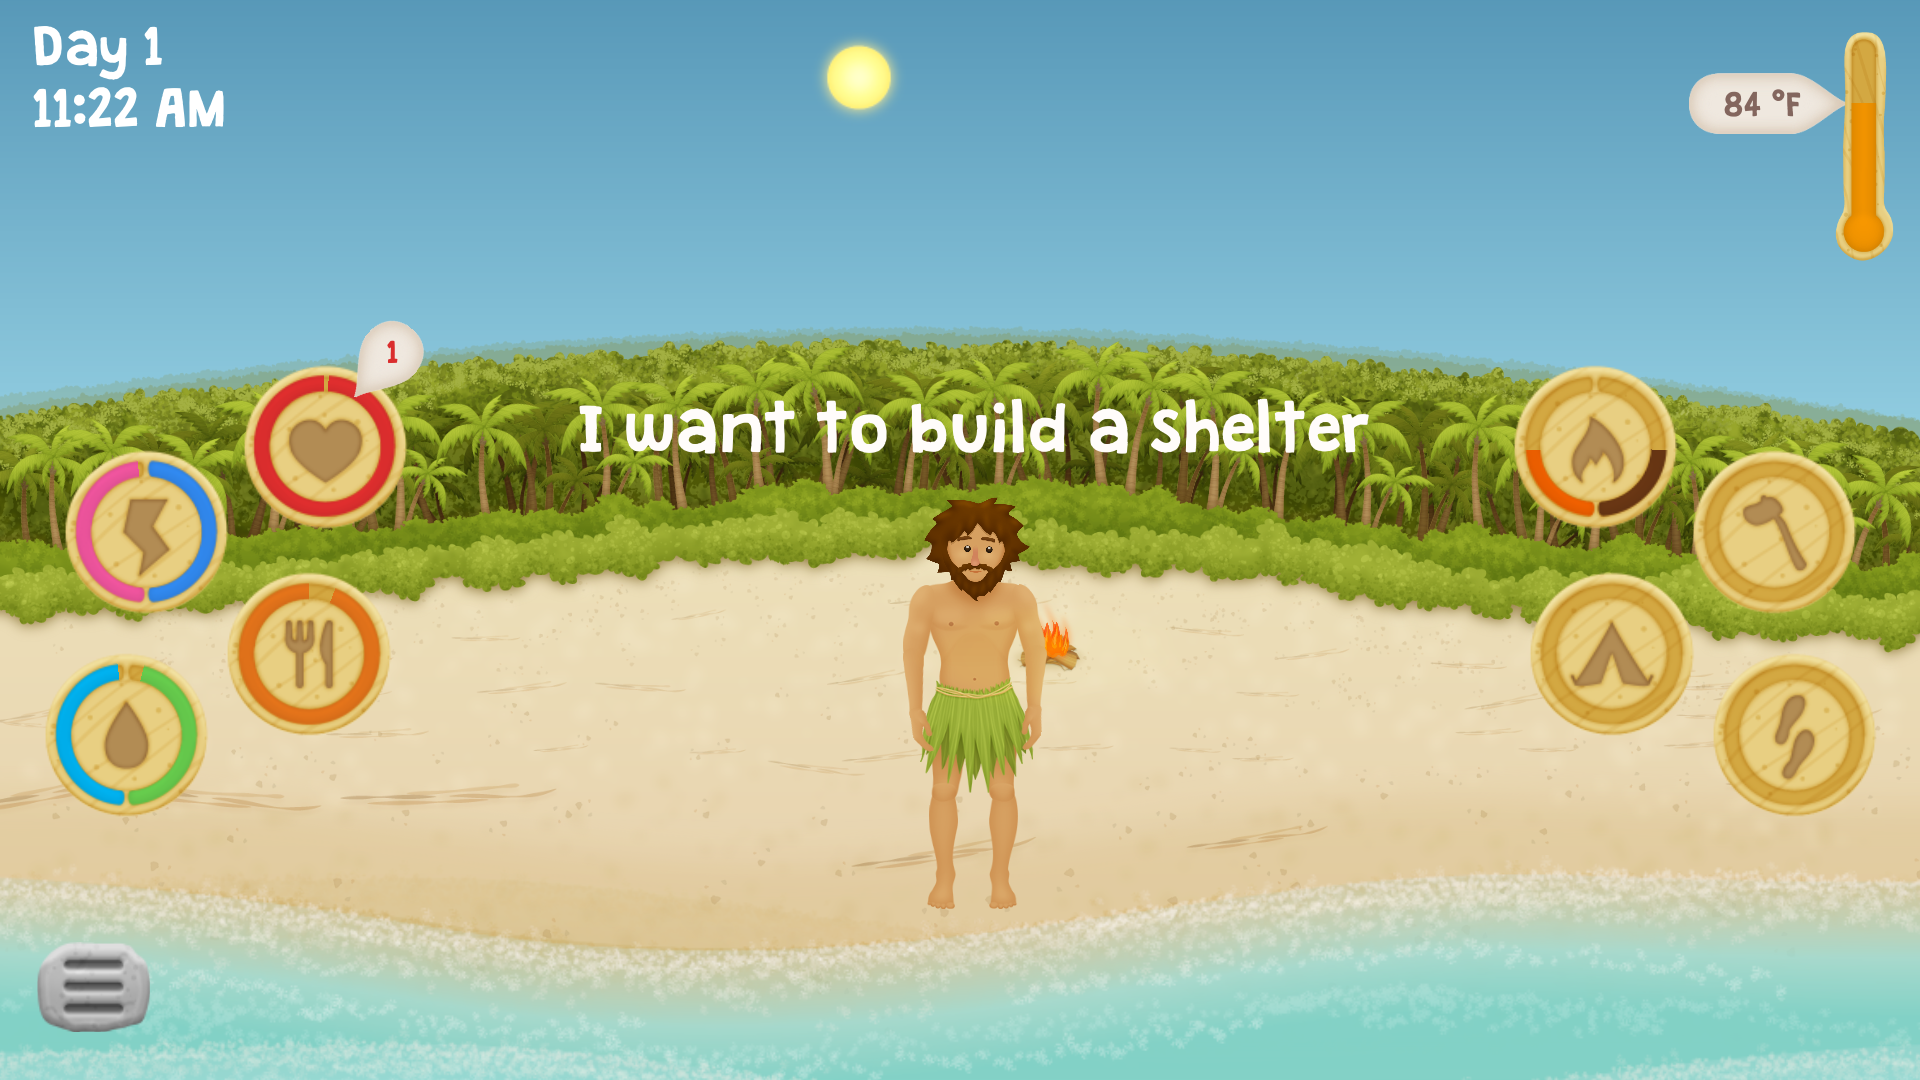 You're stranded all alone on this deserted island with